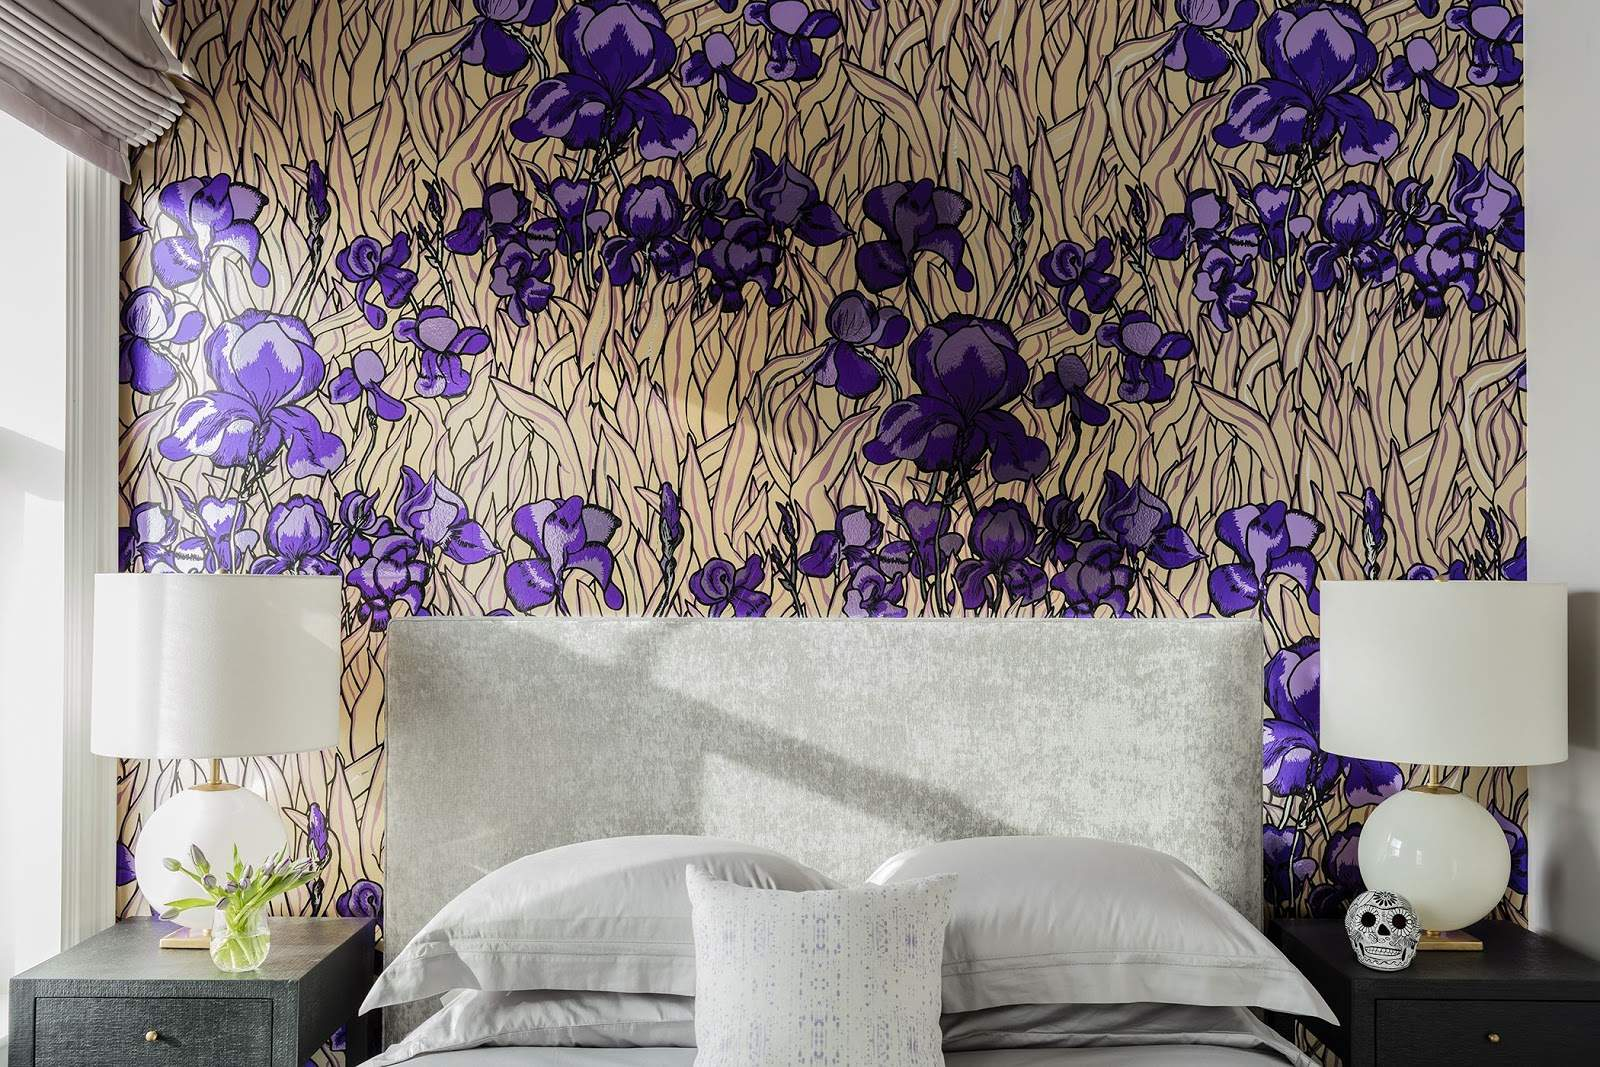 How to choose the right bedroom furniture for your home